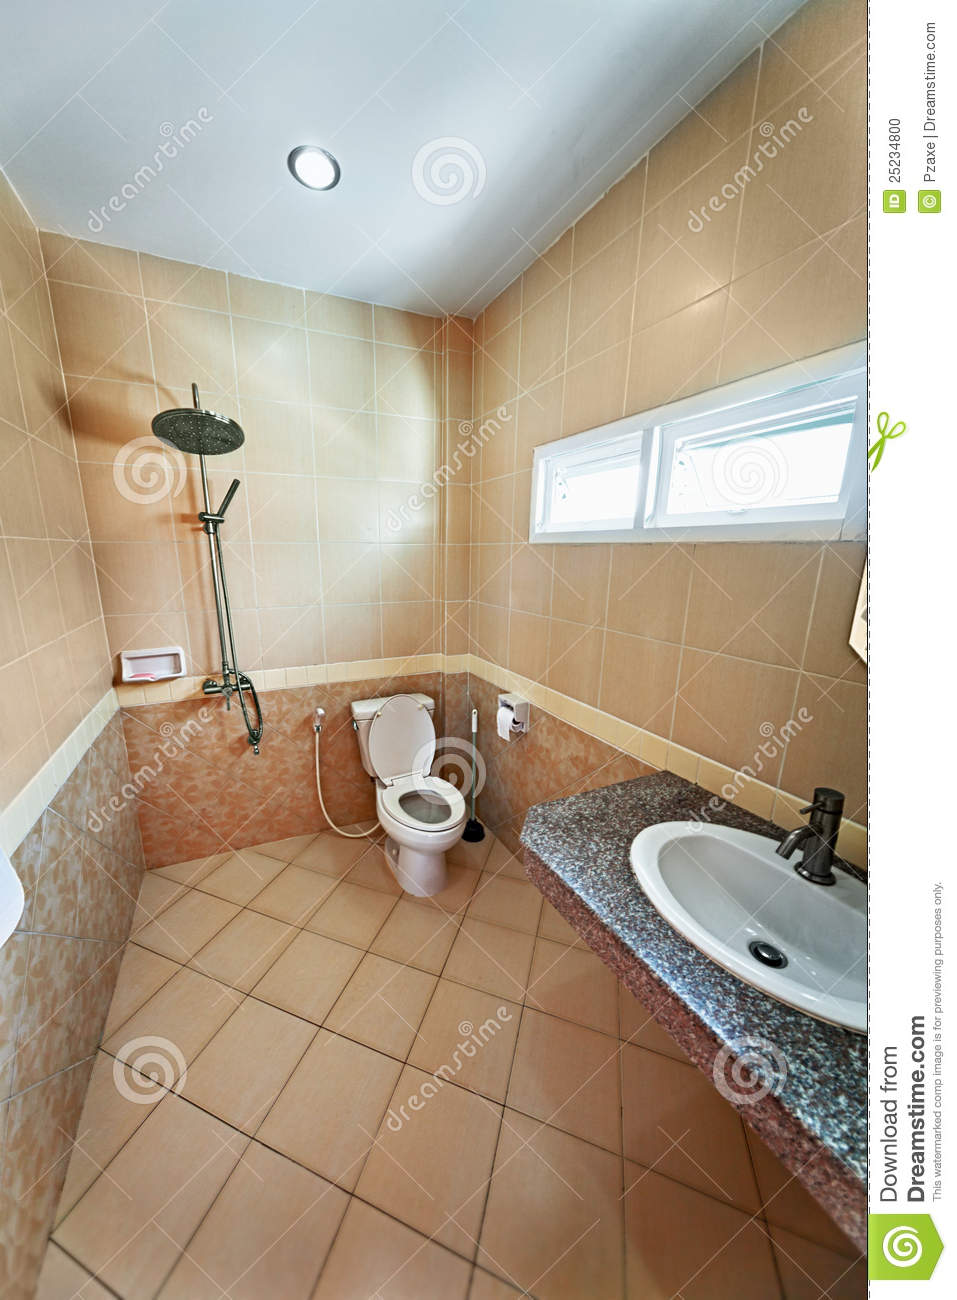 Iinterior of beige bathroom with shower stock photo for Petite salle de bain moderne